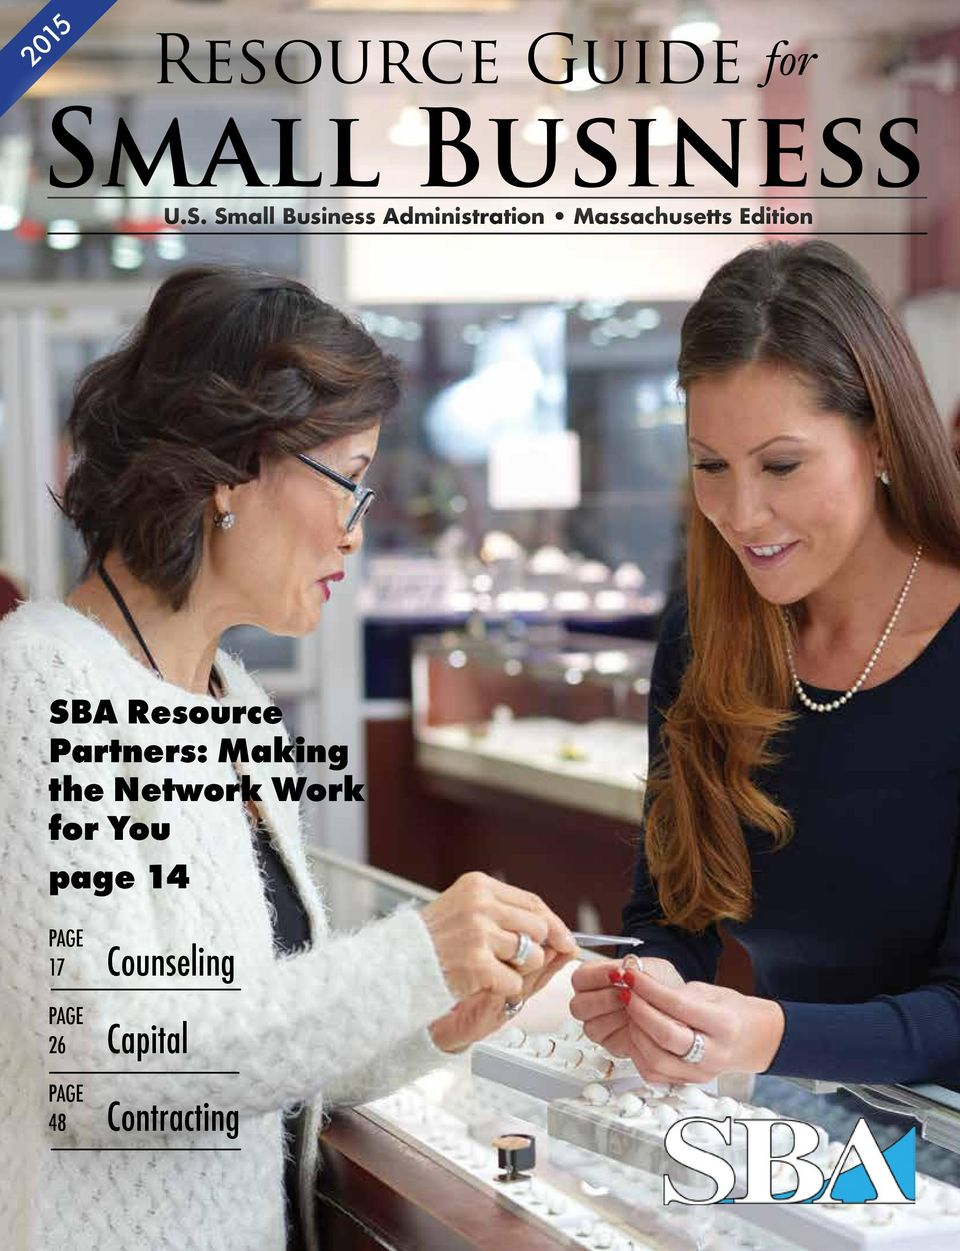 Small Business Administration Massachusetts Edition